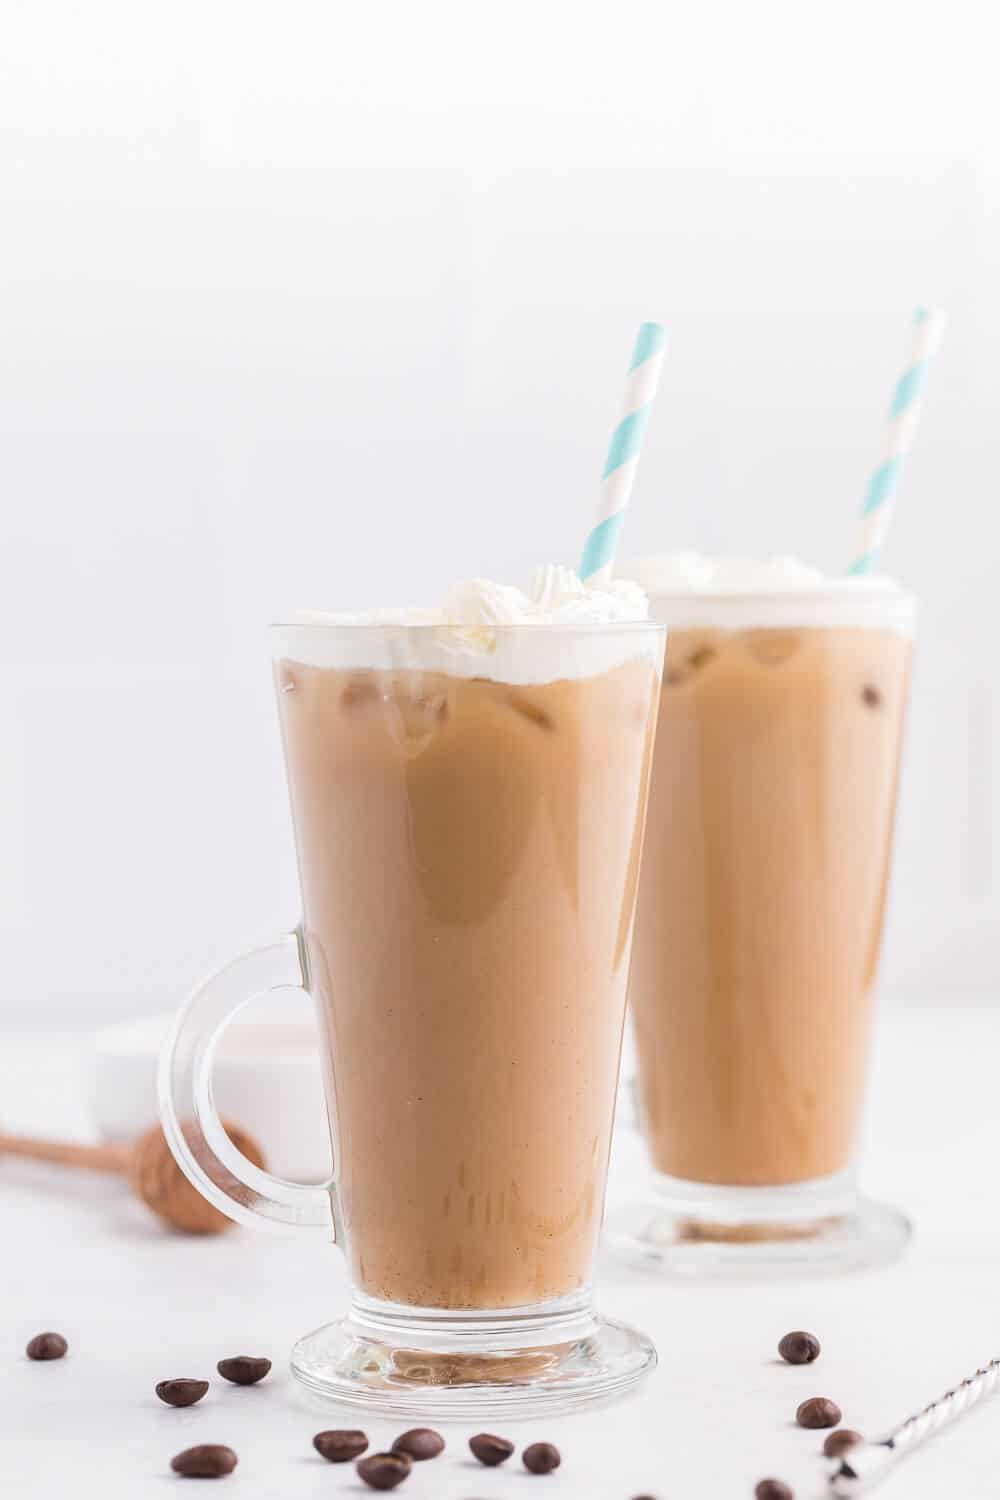 Iced Honey Almond Milk Latte - Get your coffee fix with a creamy, sweet and healthy iced latte recipe.